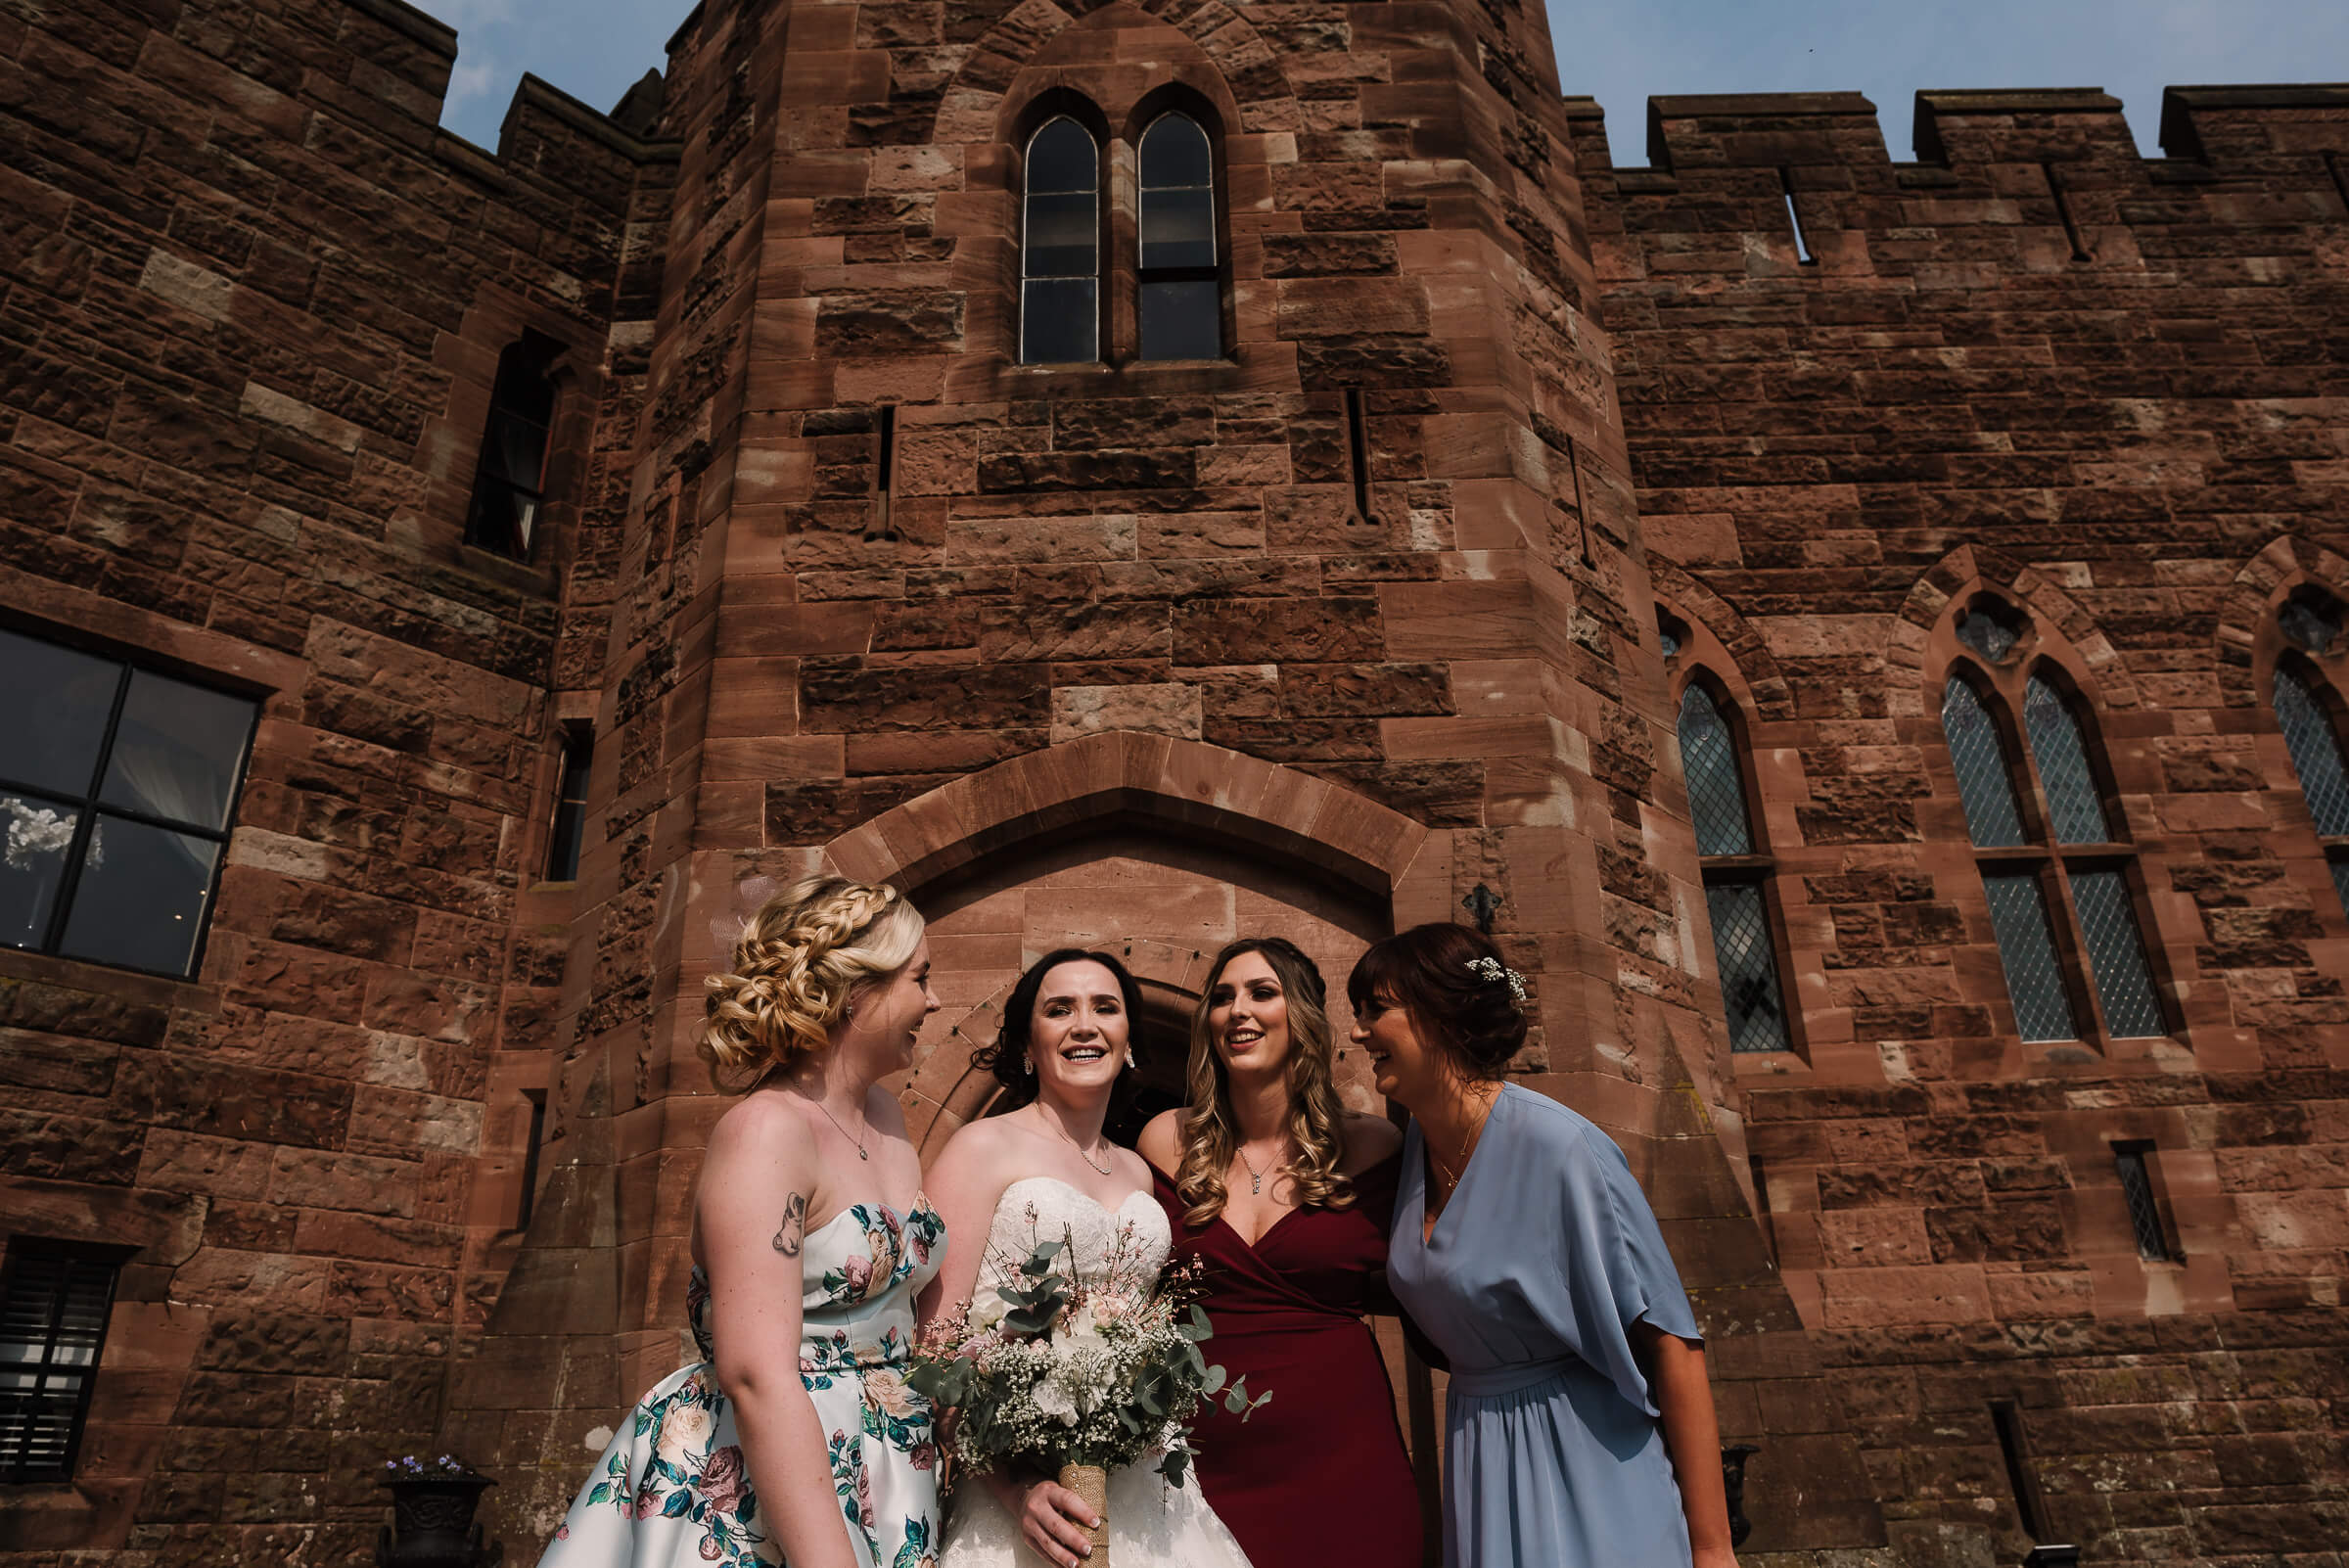 colour image of bride and friends